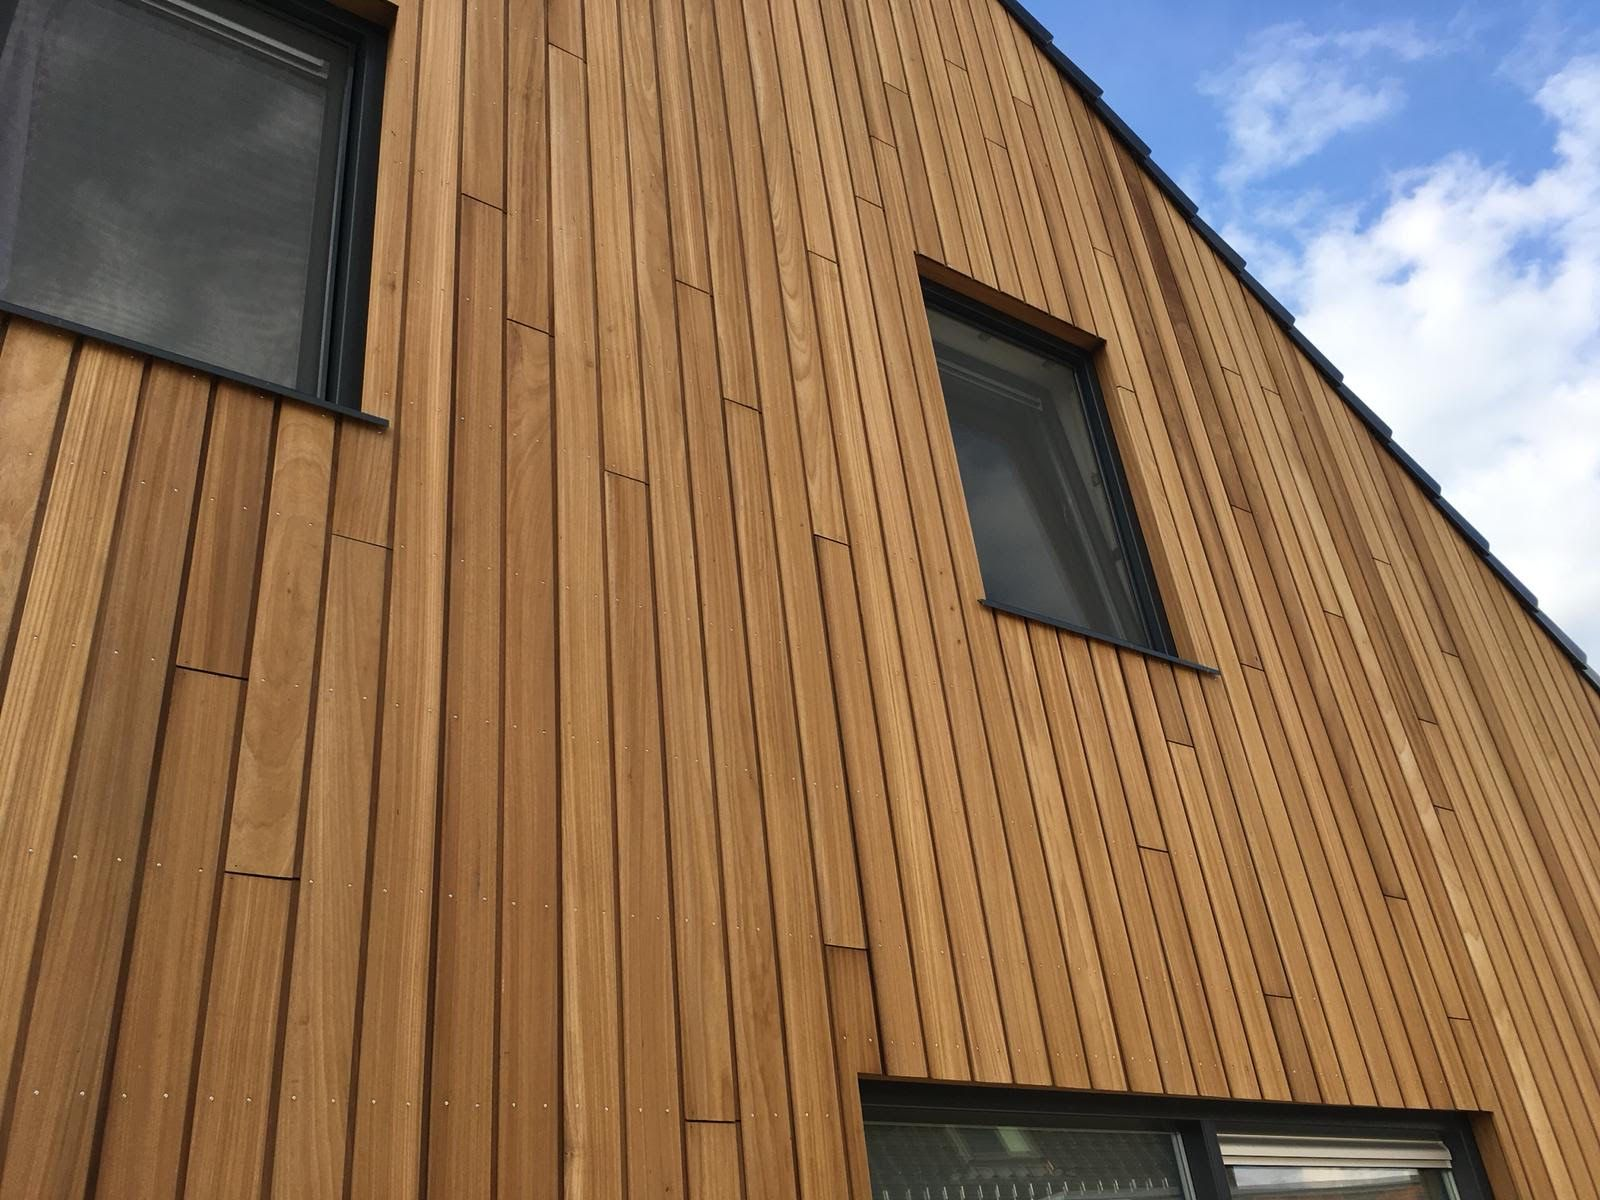 Fonkelnieuw Ayous Channelsiding 18 x 144 mm thermisch gemodificeerd PI-26